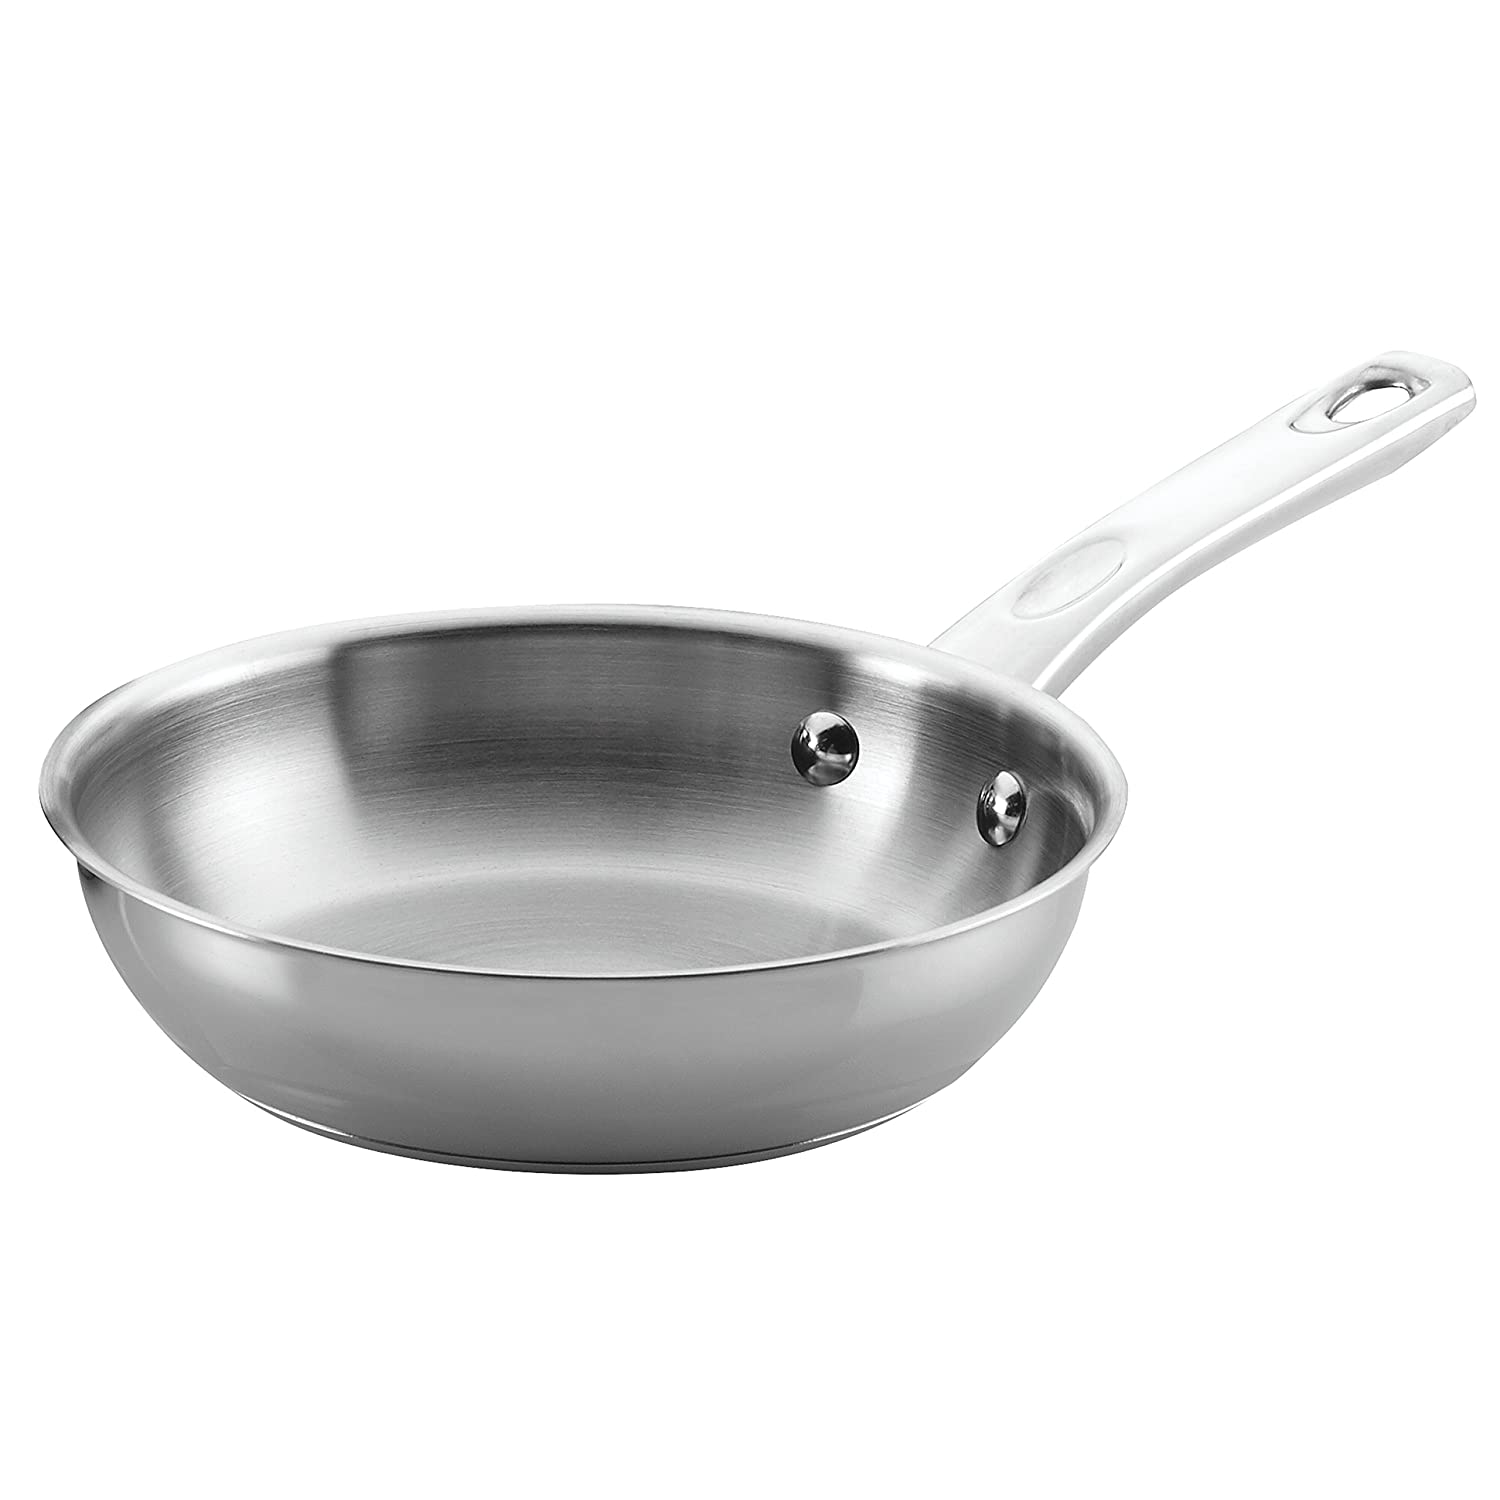 Ayesha Curry 70204 Steel Skillet, Small, Stainless